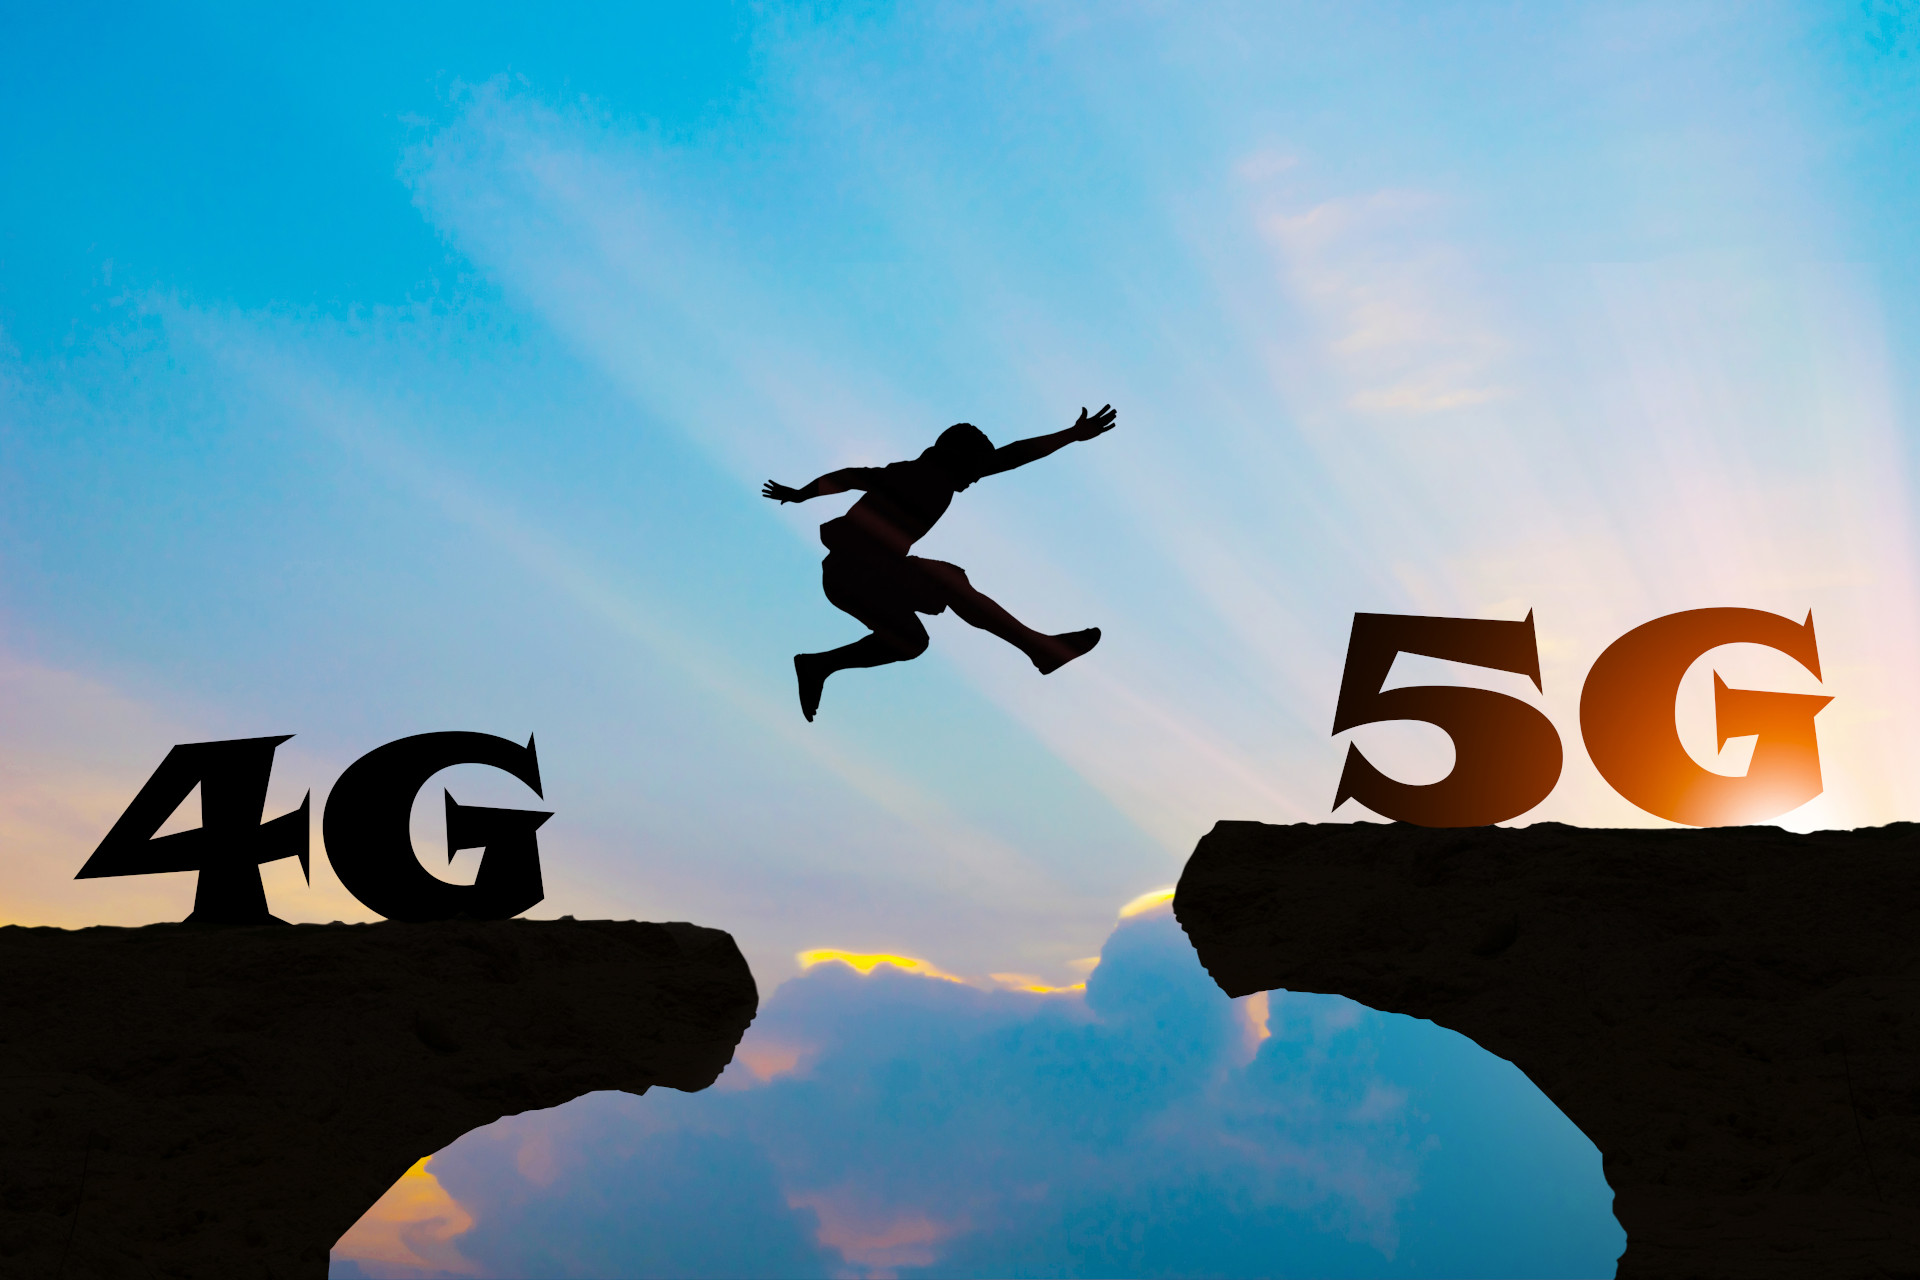 4g-5g-giant-leap-blog-banner